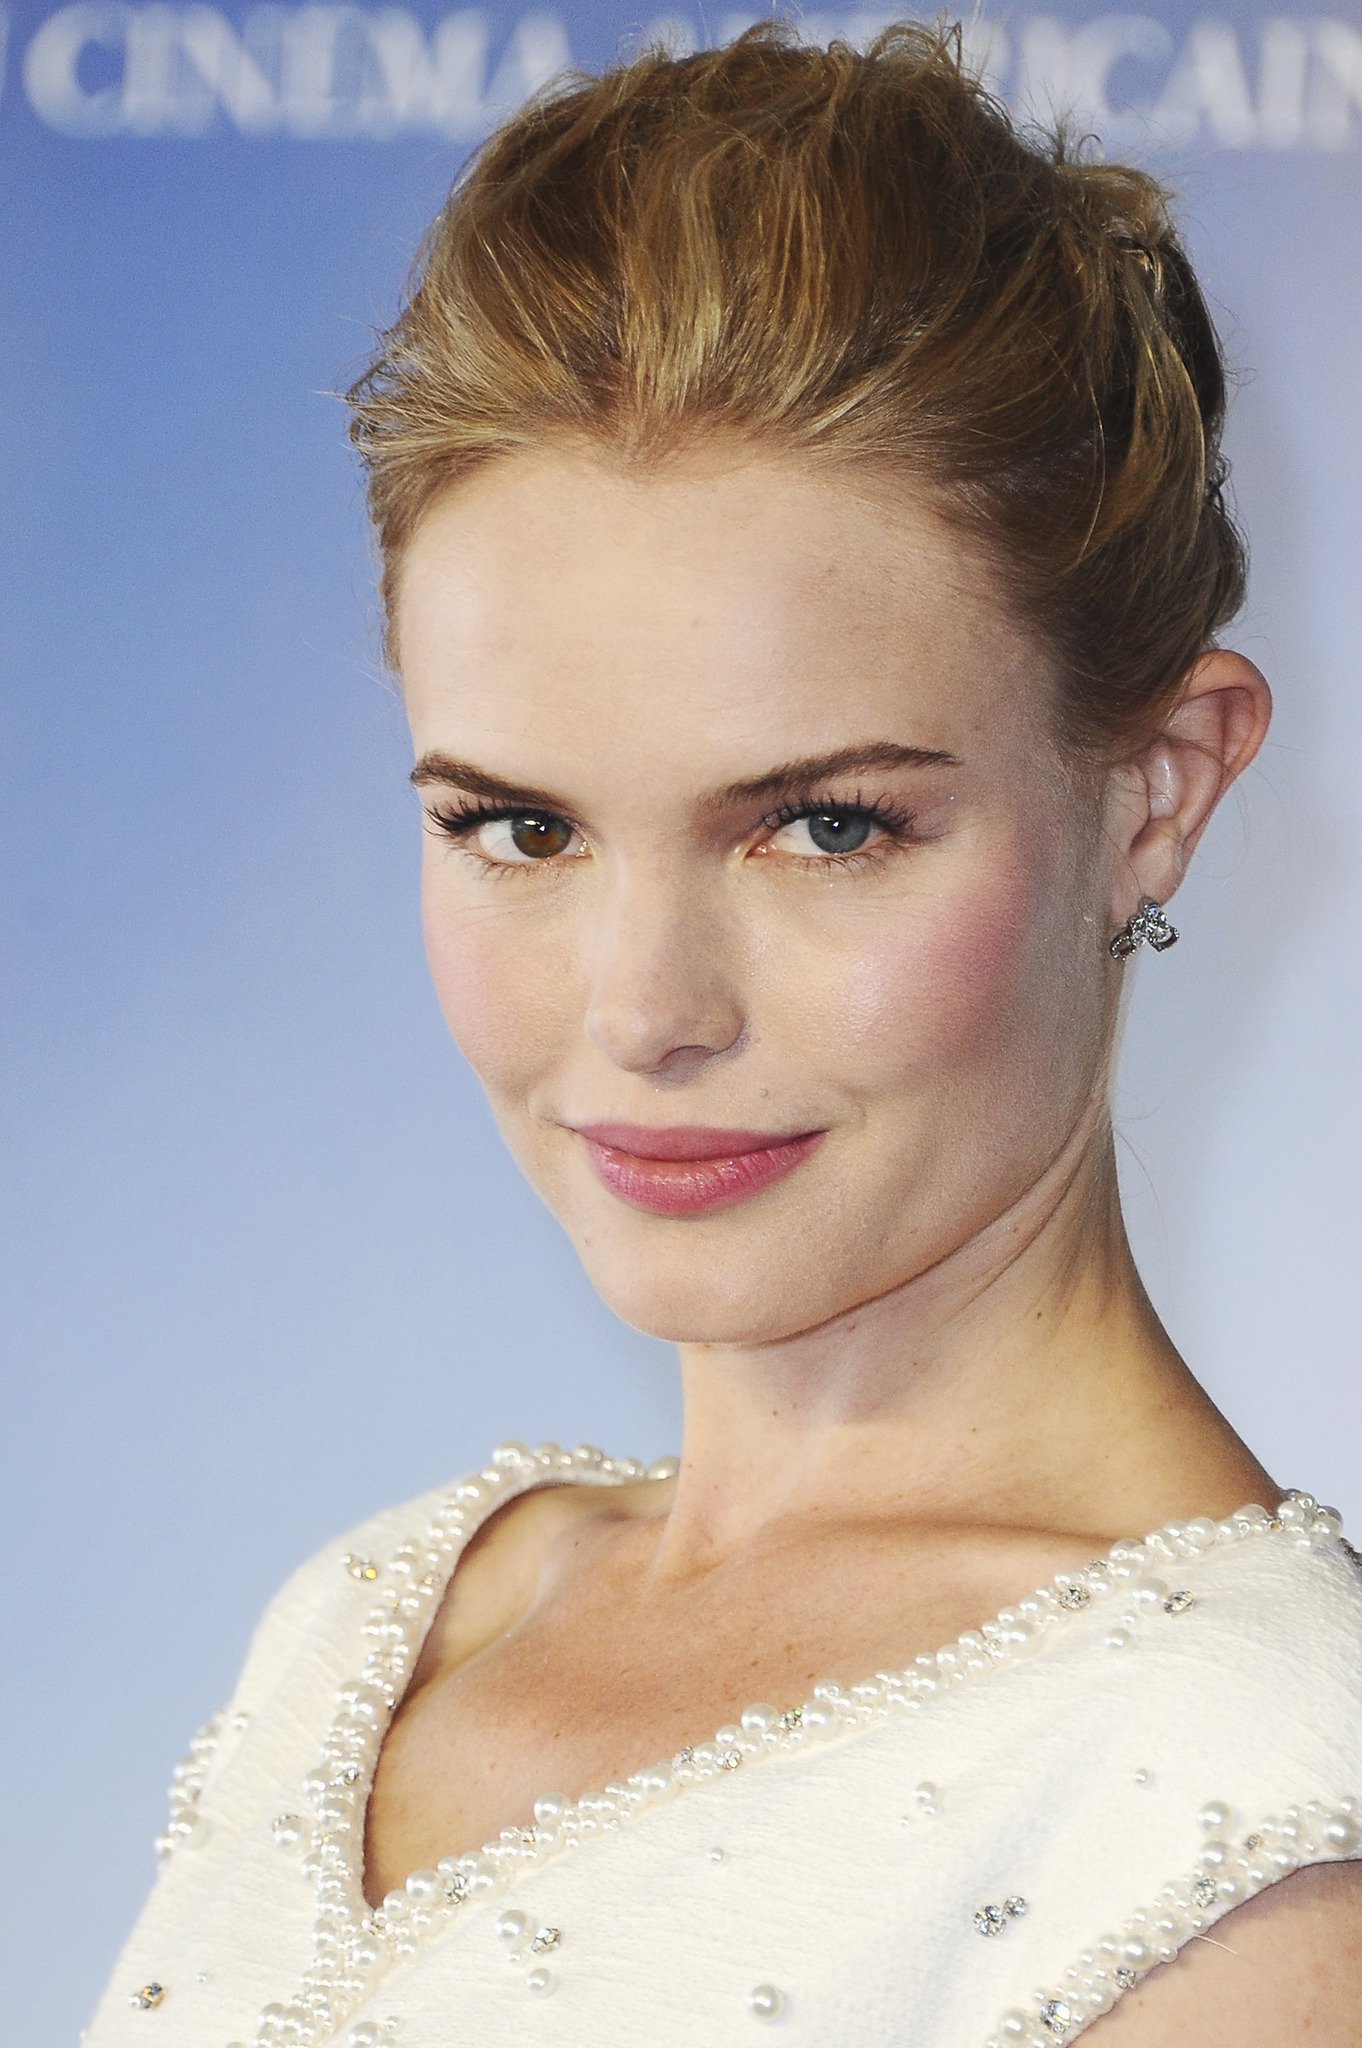 Kate Bosworth - IMDbPr... Kate Bosworth